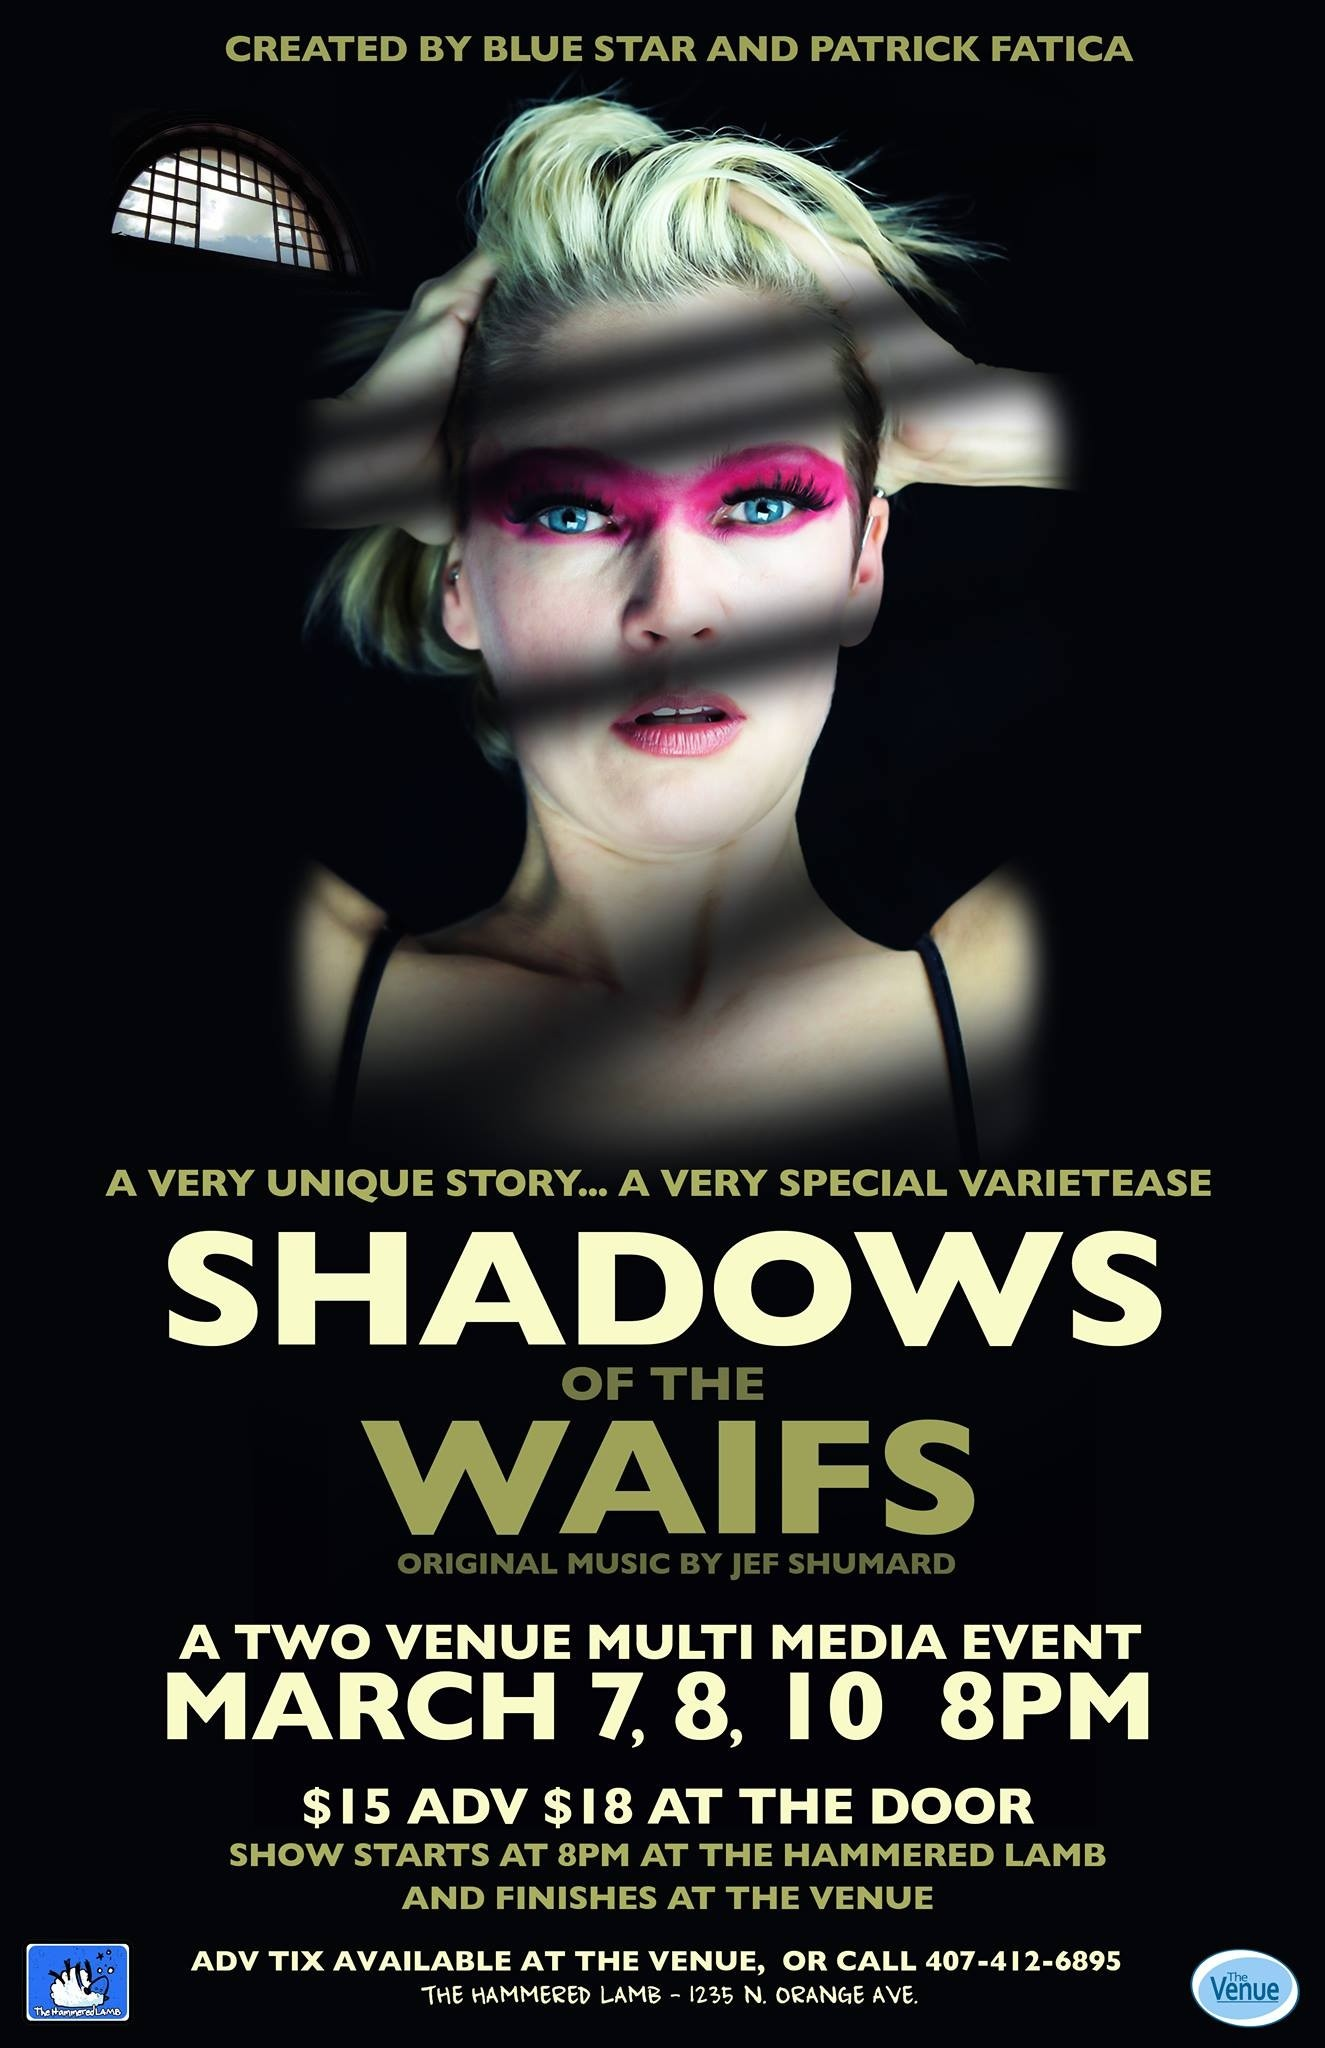 Shadows of the Waifs at The Venue extended until March 24.